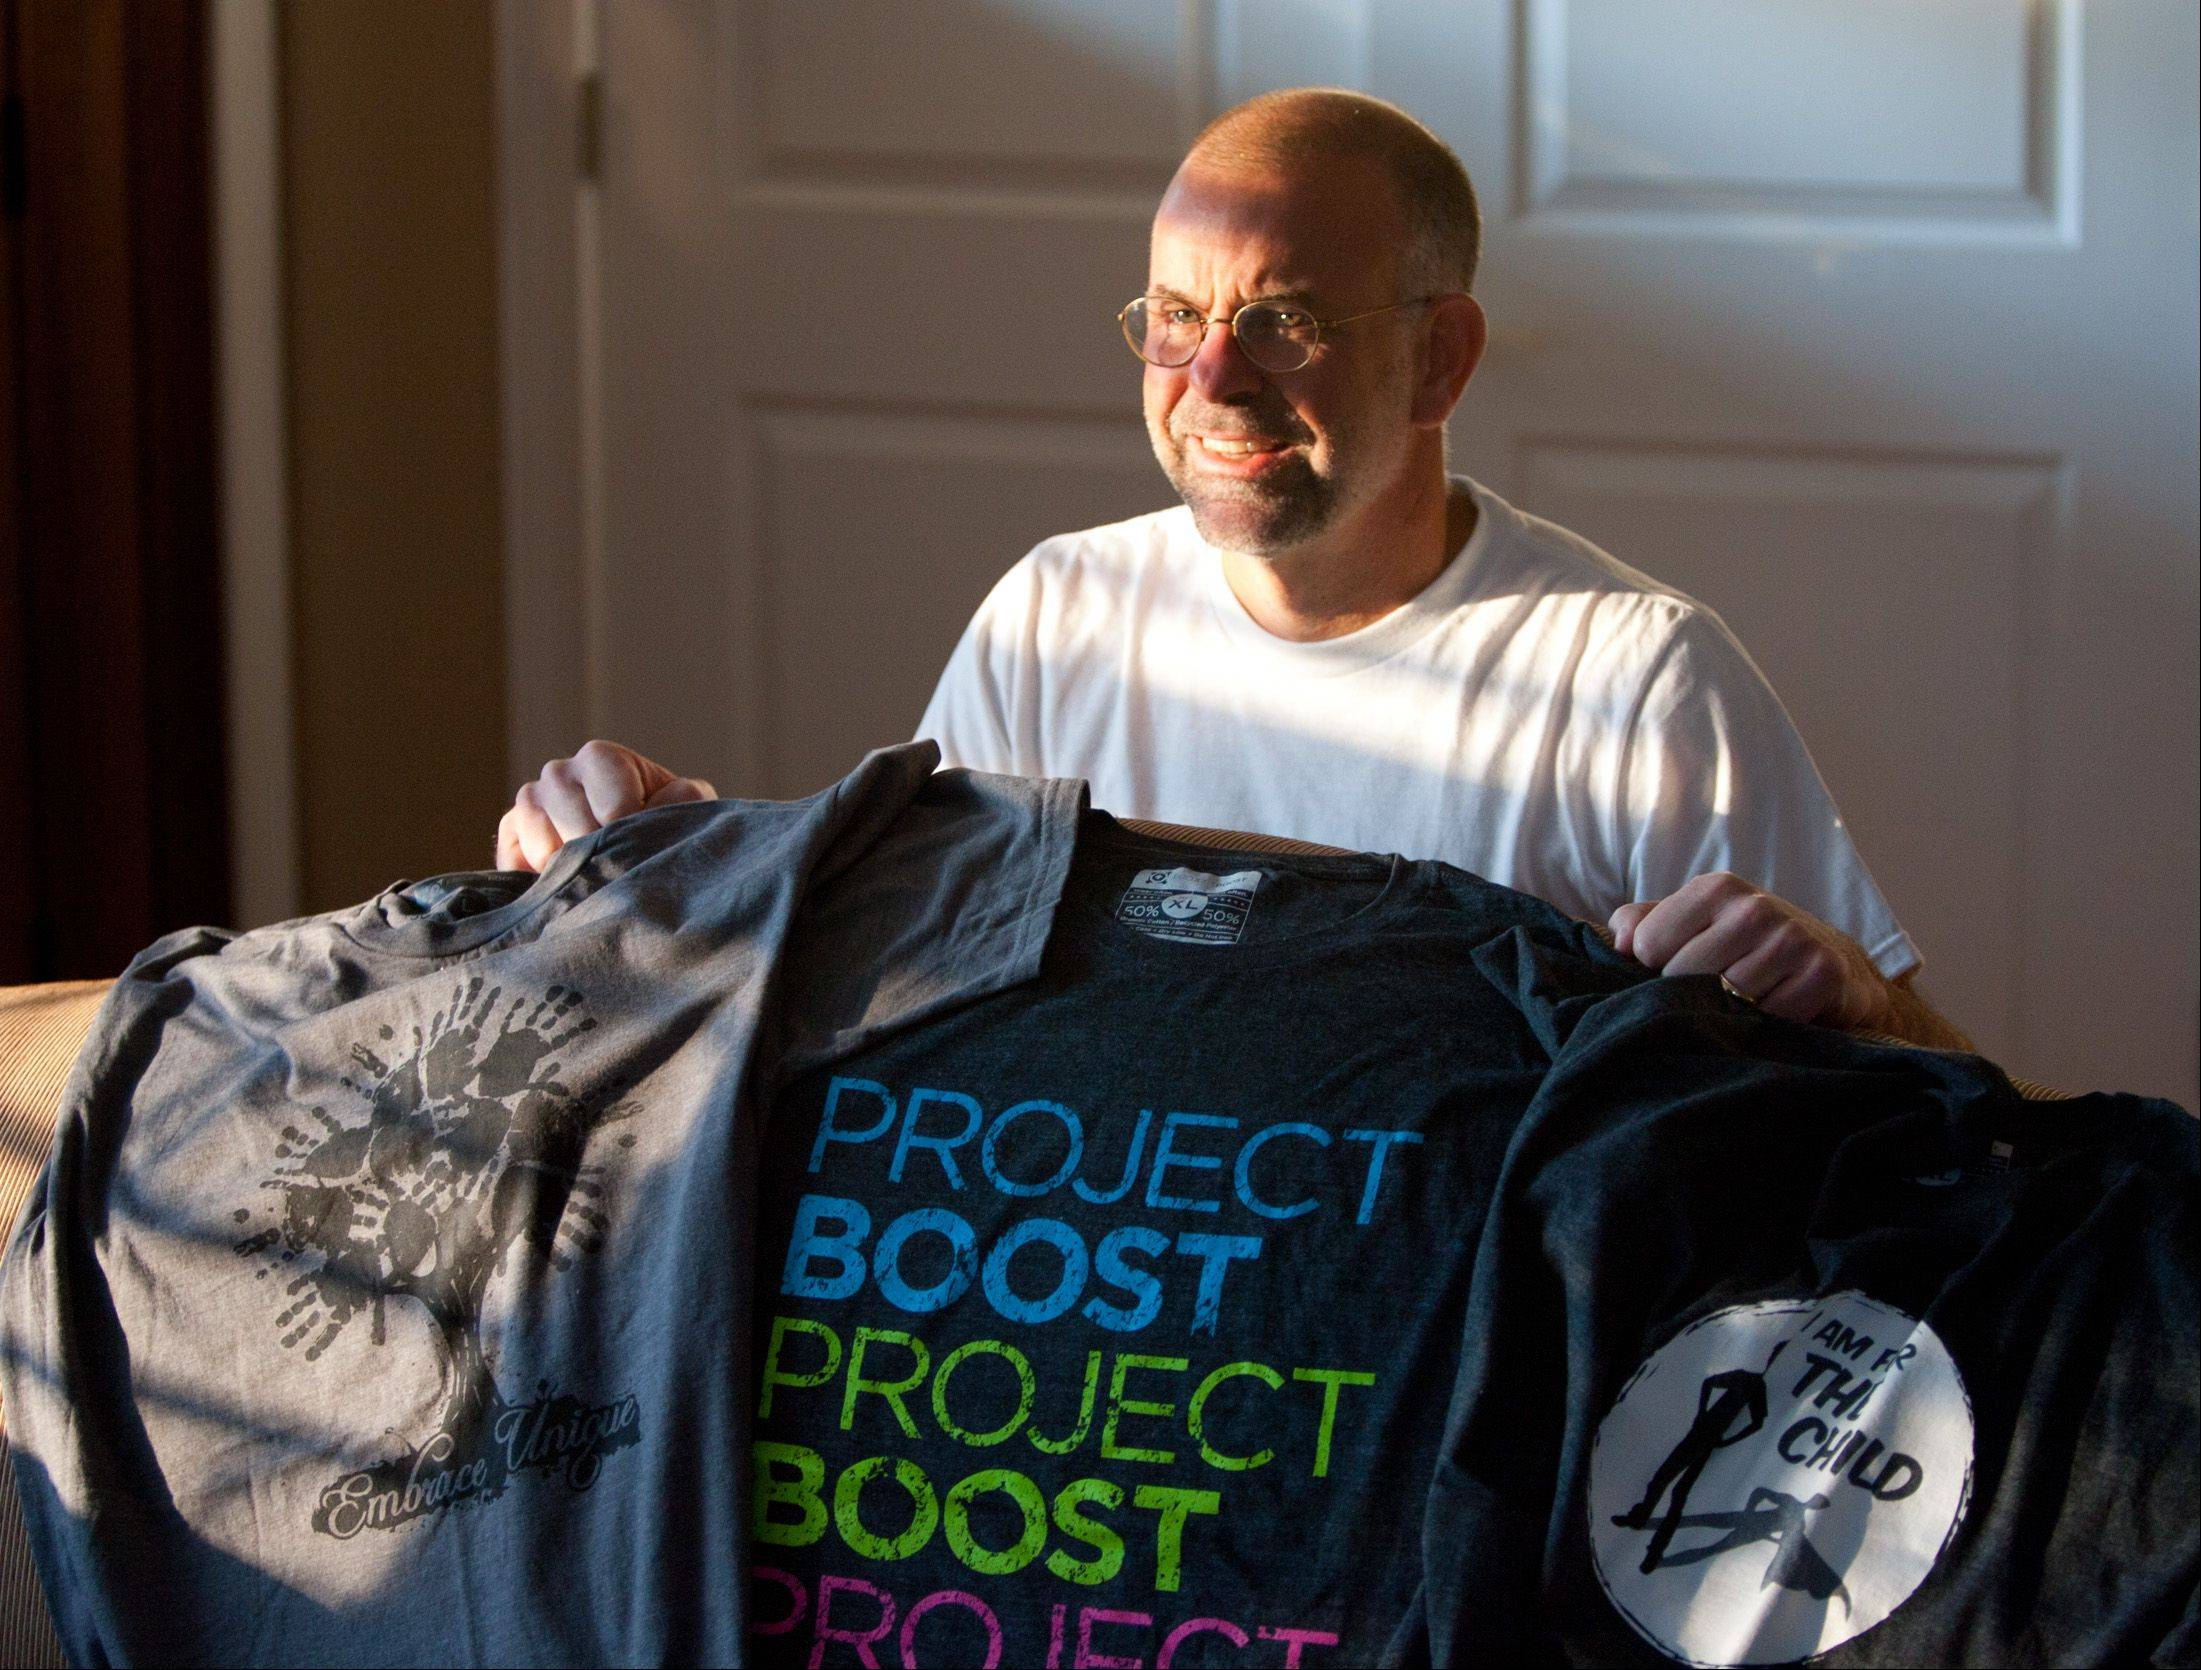 Shaun Emerson of Glen Ellyn was looking for a career change when he hit on the idea of using his business skills to draw attention to local charities. The result is ProjectBoost, which creates and sells unique T-shirt designs for nonprofit groups.